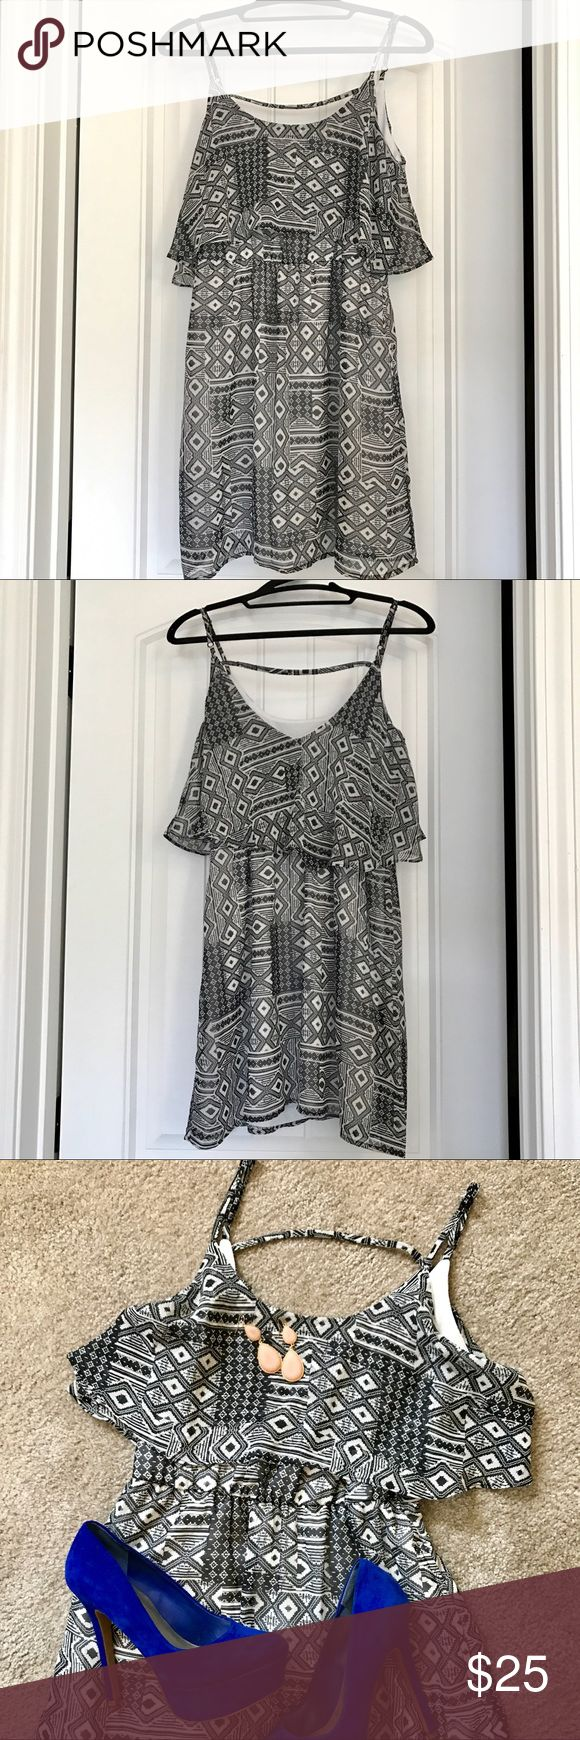 Nordstrom Black & White Tribal Sun Dress This sun dress is perfect for multiple occasions! Wear it to the beach, pair it with some bright heels for a wedding, or put on a cardigan and wear it to church! Hits about 2-3inches above the knee for a shorter person. Comfy and breathable...plus...it has pockets! Fits true to size. 100% Polyester. Machine wash cold and hang to dry. Nordstrom Dresses Mini